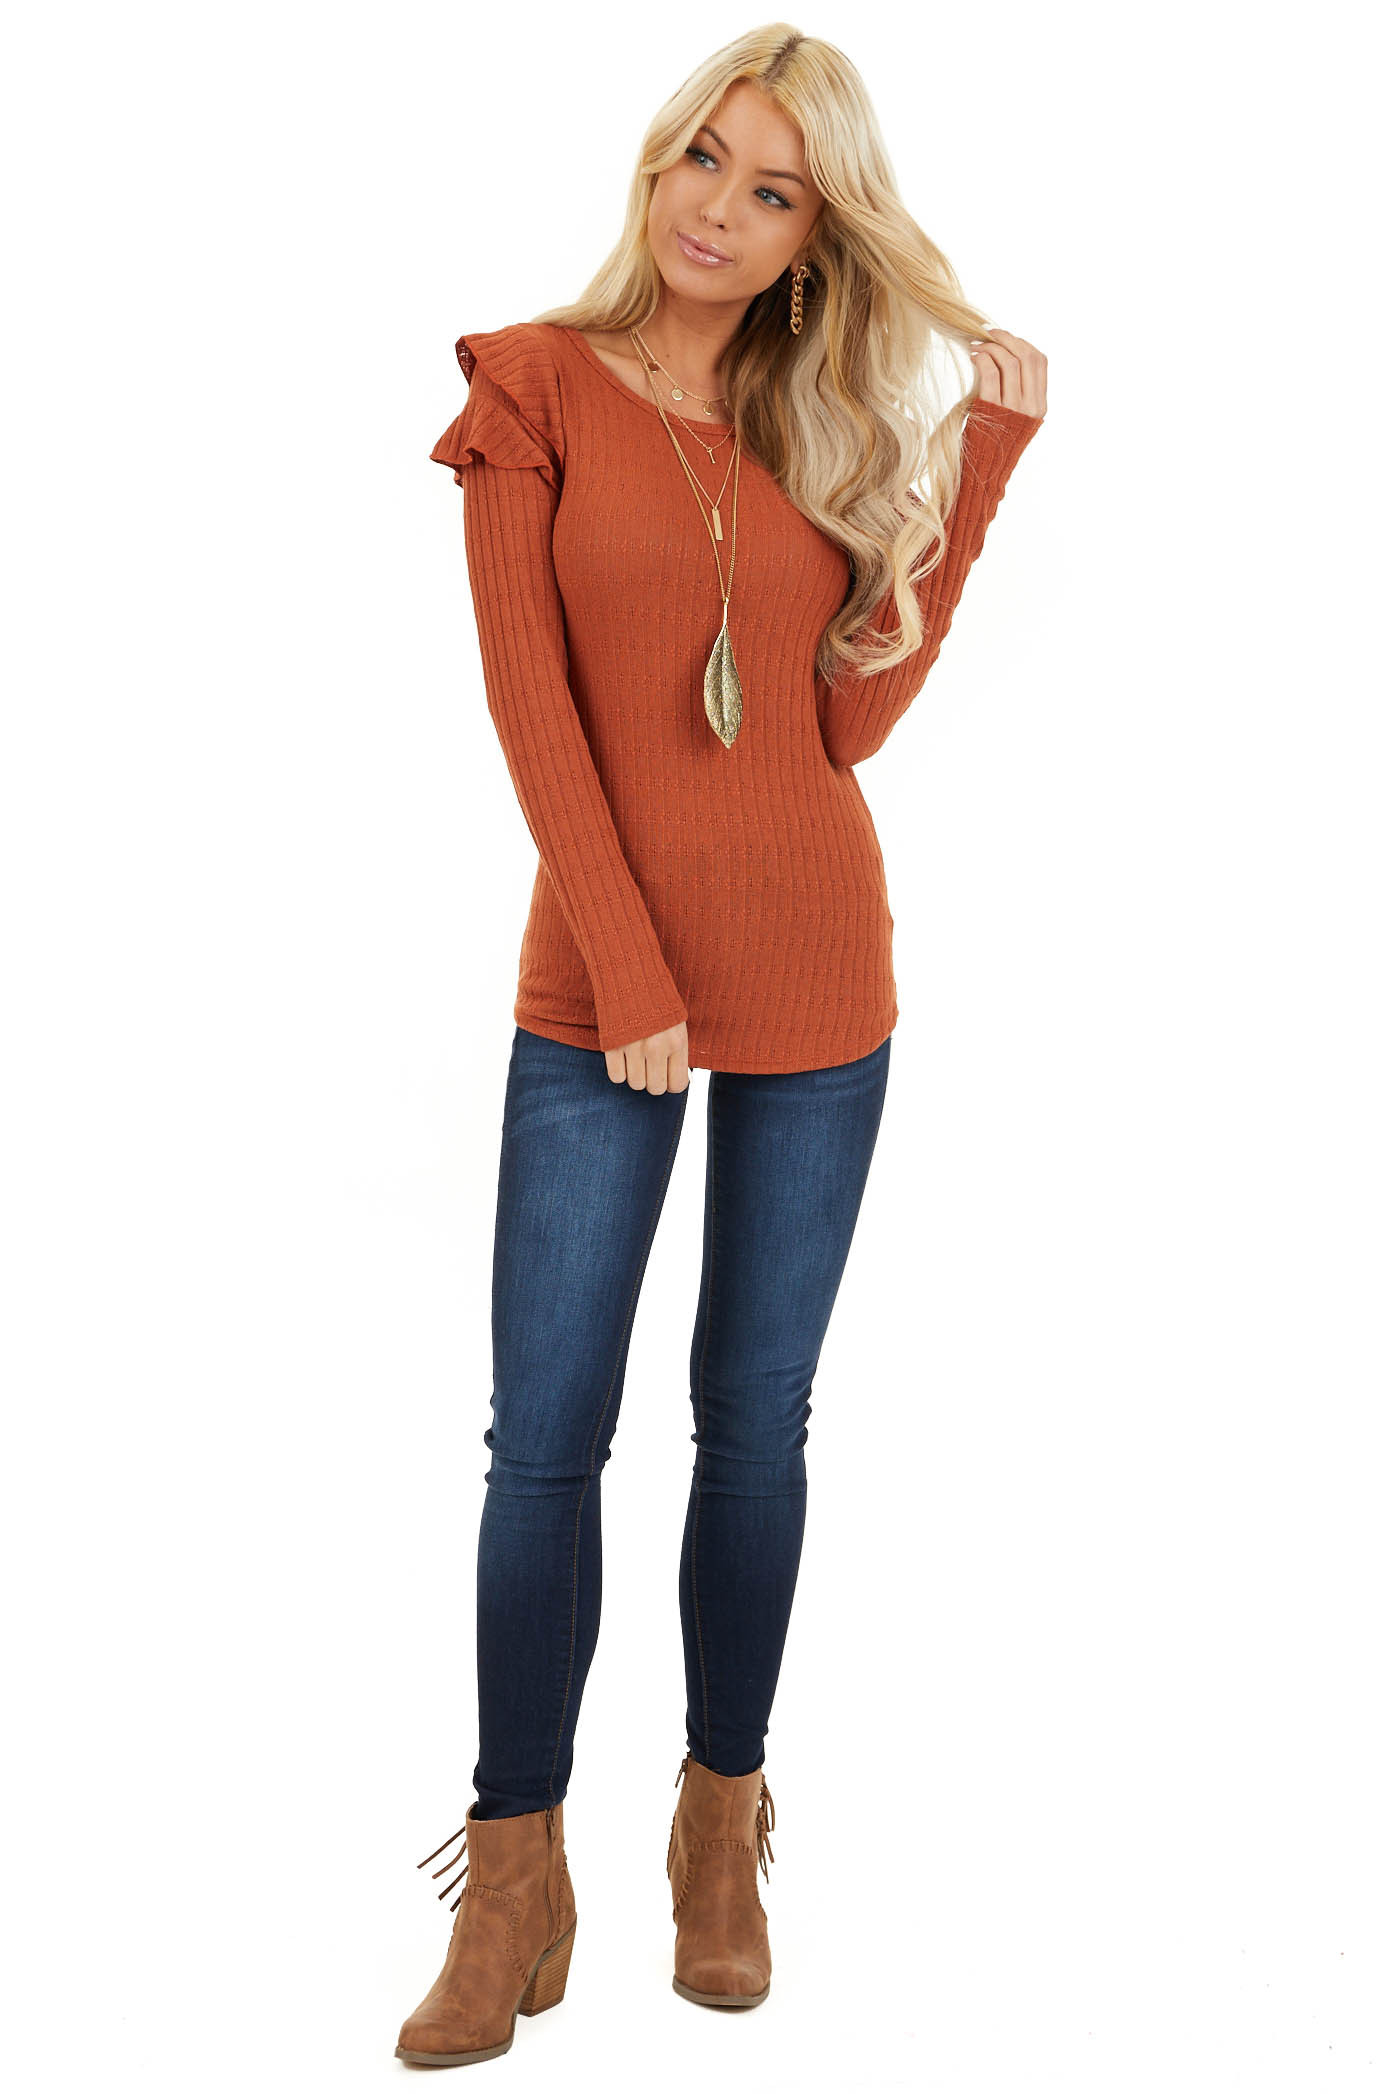 Rust Textured Knit Top with Long Sleeves and Ruffle Details front full body